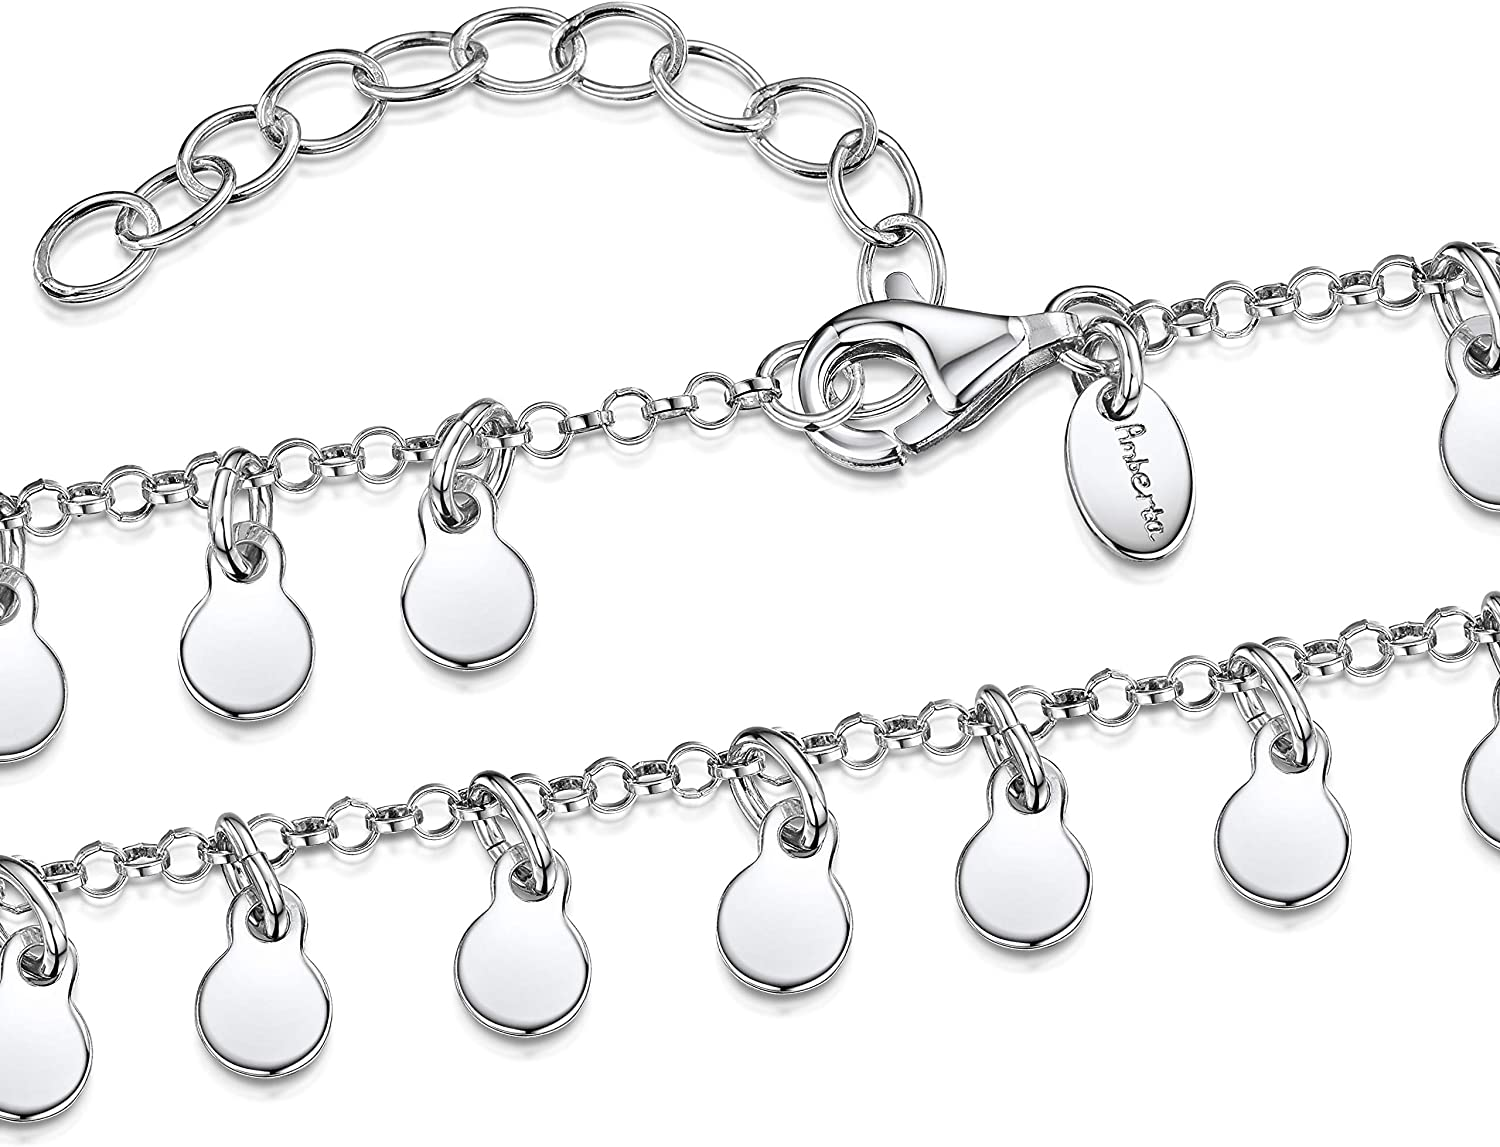 """Amberta 925 Sterling Silver Adjustable Anklet - Chain for Women - Leg Ankle Bracelet - Various Types - 9"""" to 10"""" inch - Flexible Fit Rolo Belcher Chain Anklet With Coins"""